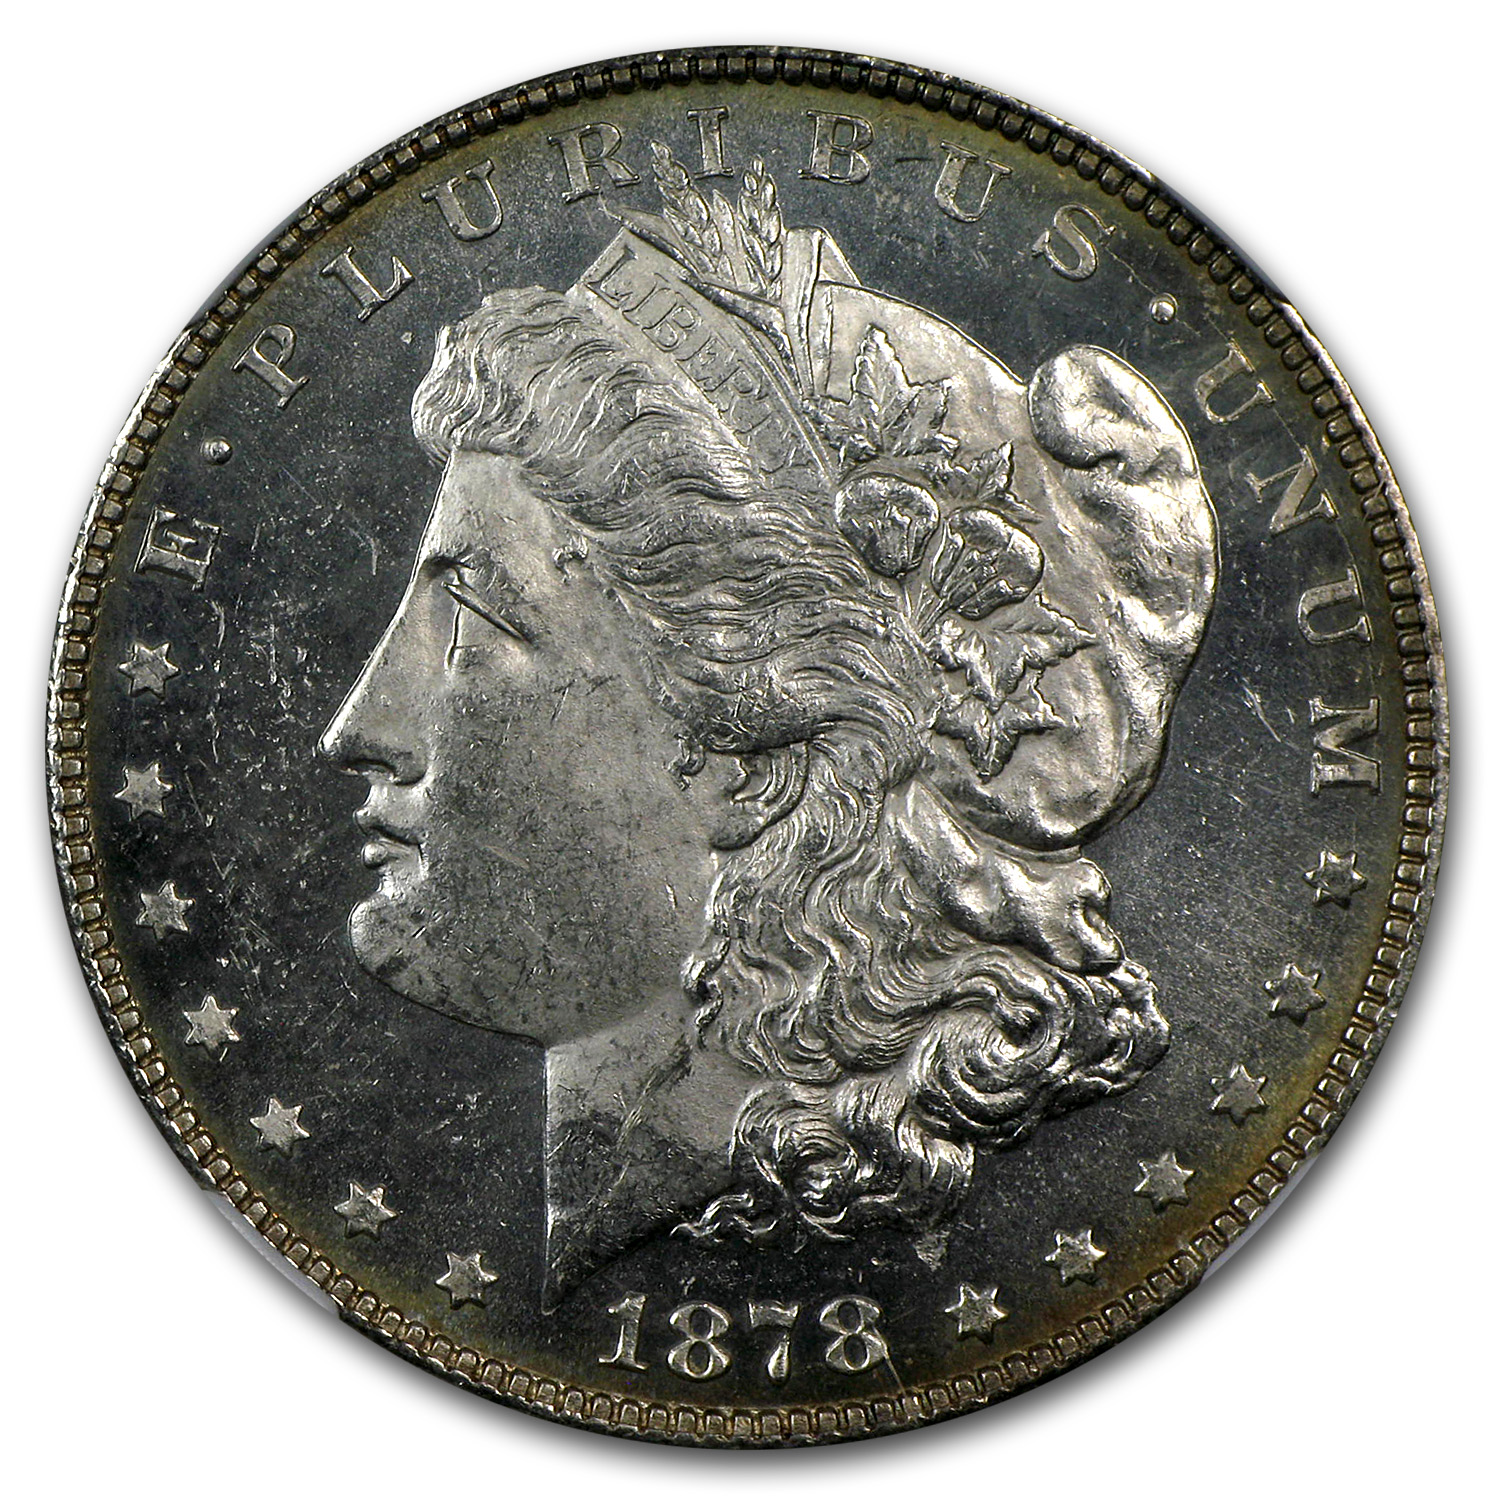 1878 Morgan Dollar 7 TF Rev of 78 MS-63 PL Proof Like NGC